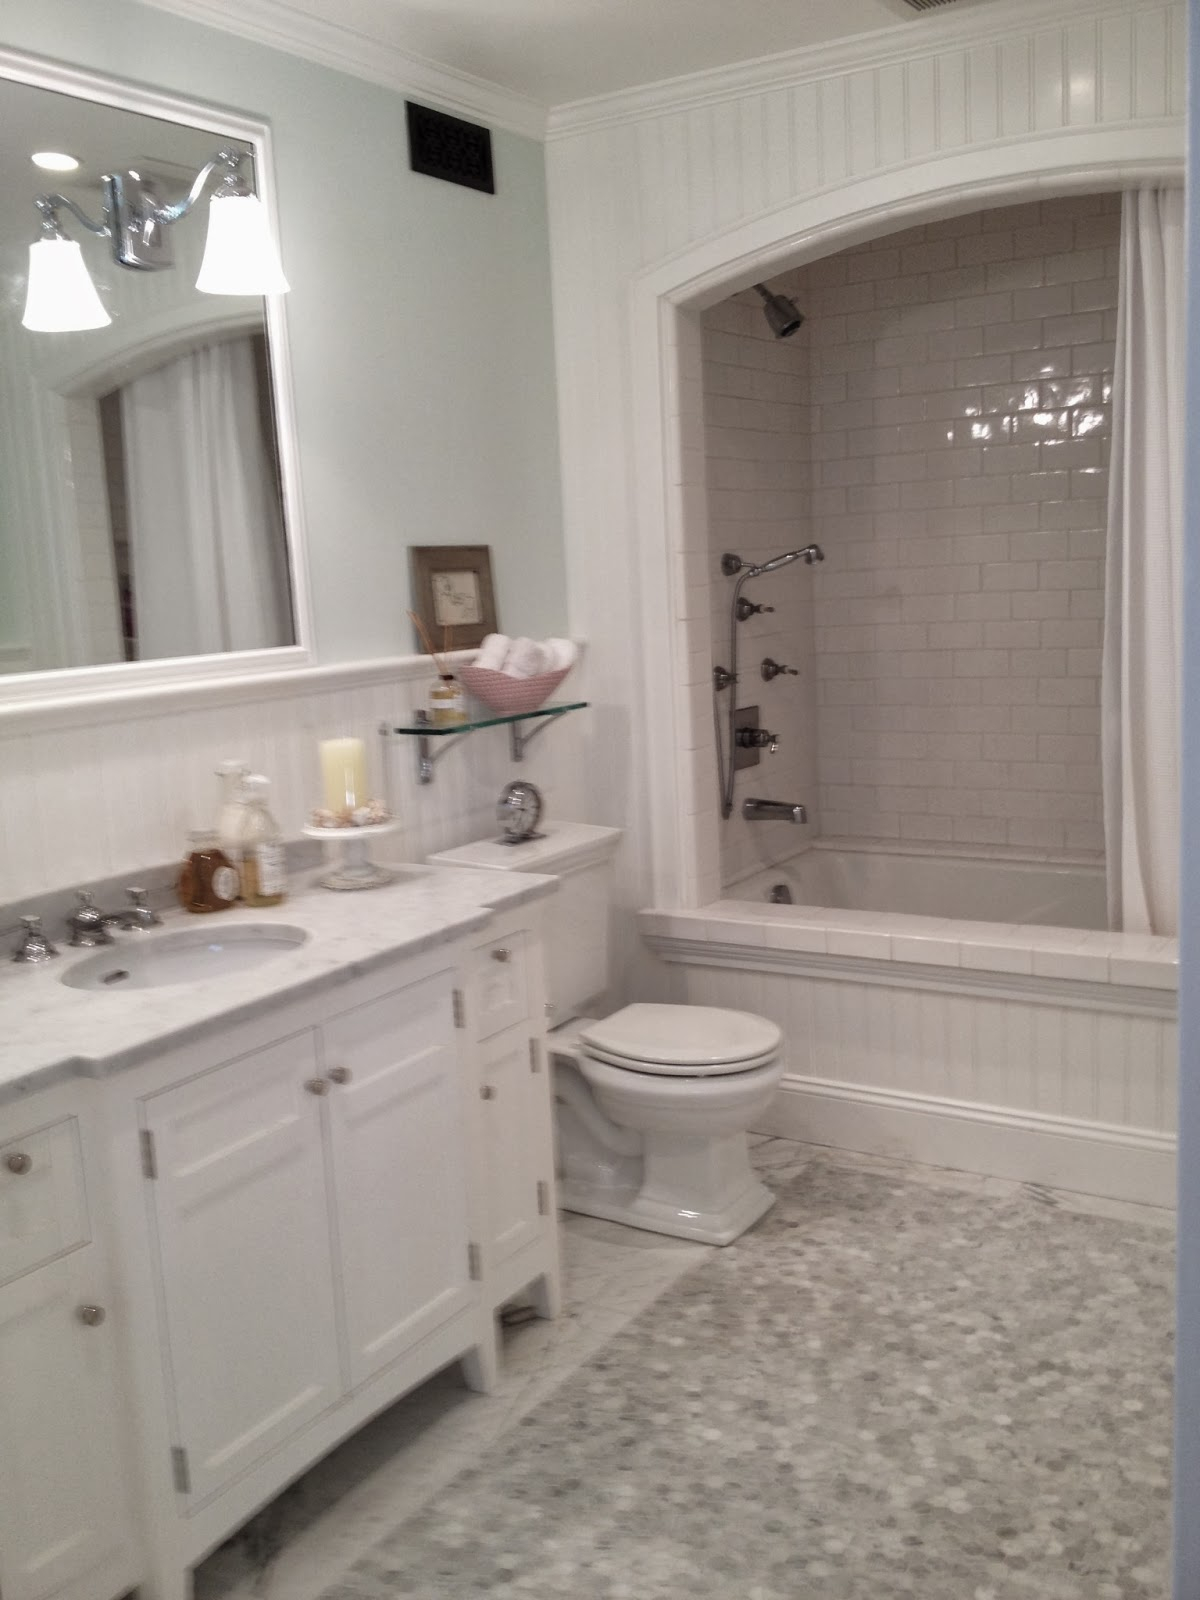 Fabulous Mortgage Loans Caroline Gerardo Home : White Bathroom Remodel throughout Low Cost Bathroom Remodel